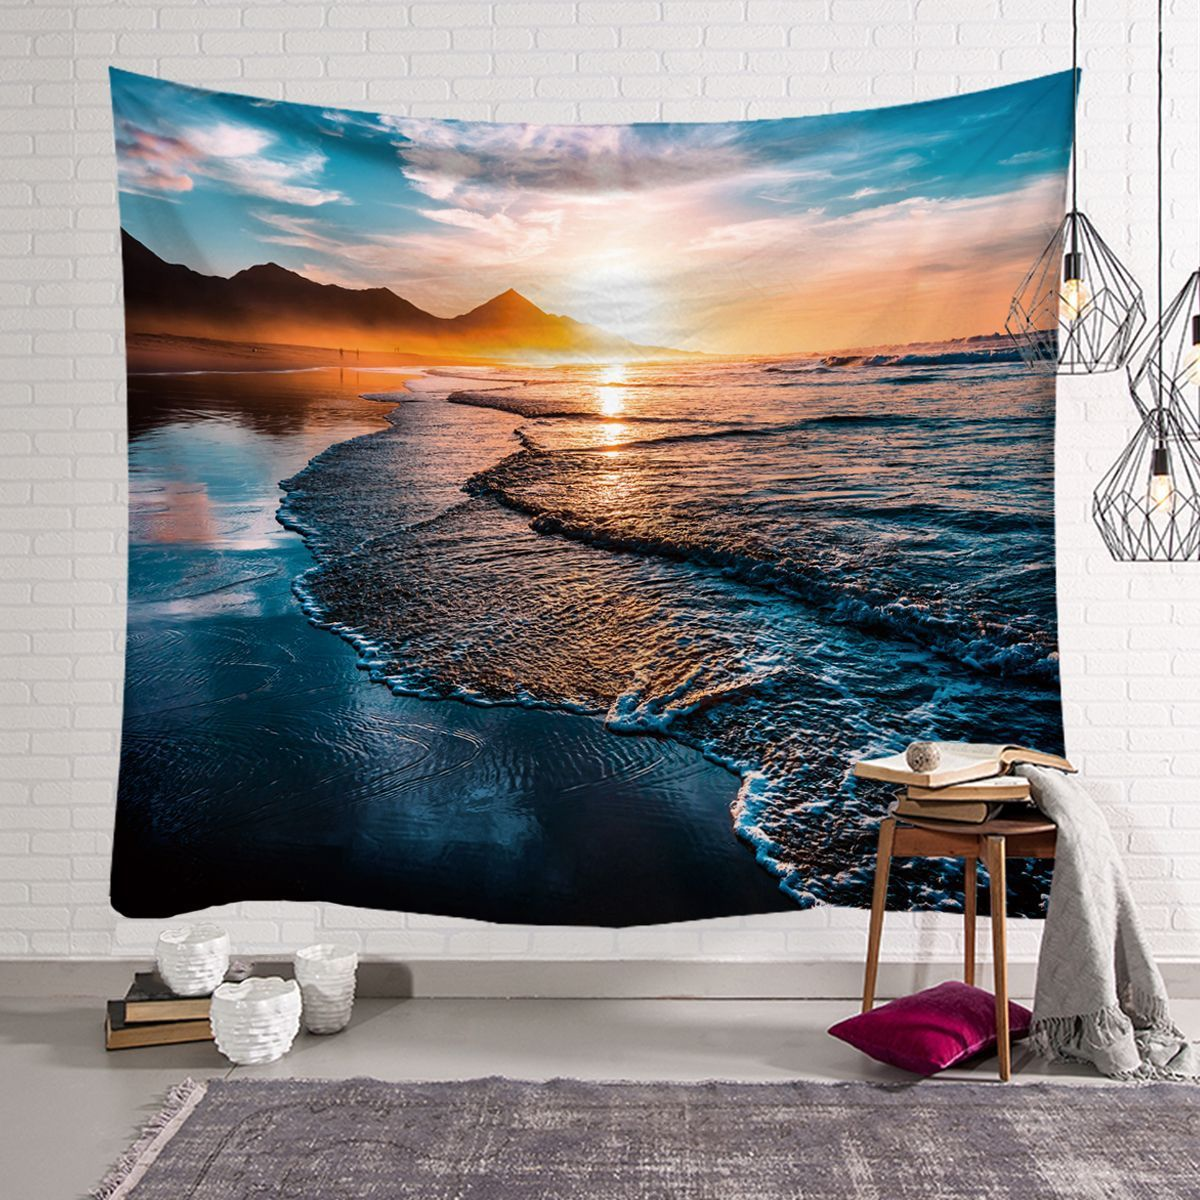 Seaside Scenery Series Tapestry <font><b>macrame</b></font> wall hanging Natural boho decor wall cloth tapestries psychedelic <font><b>tenture</b></font> <font><b>mural</b></font> blanket image